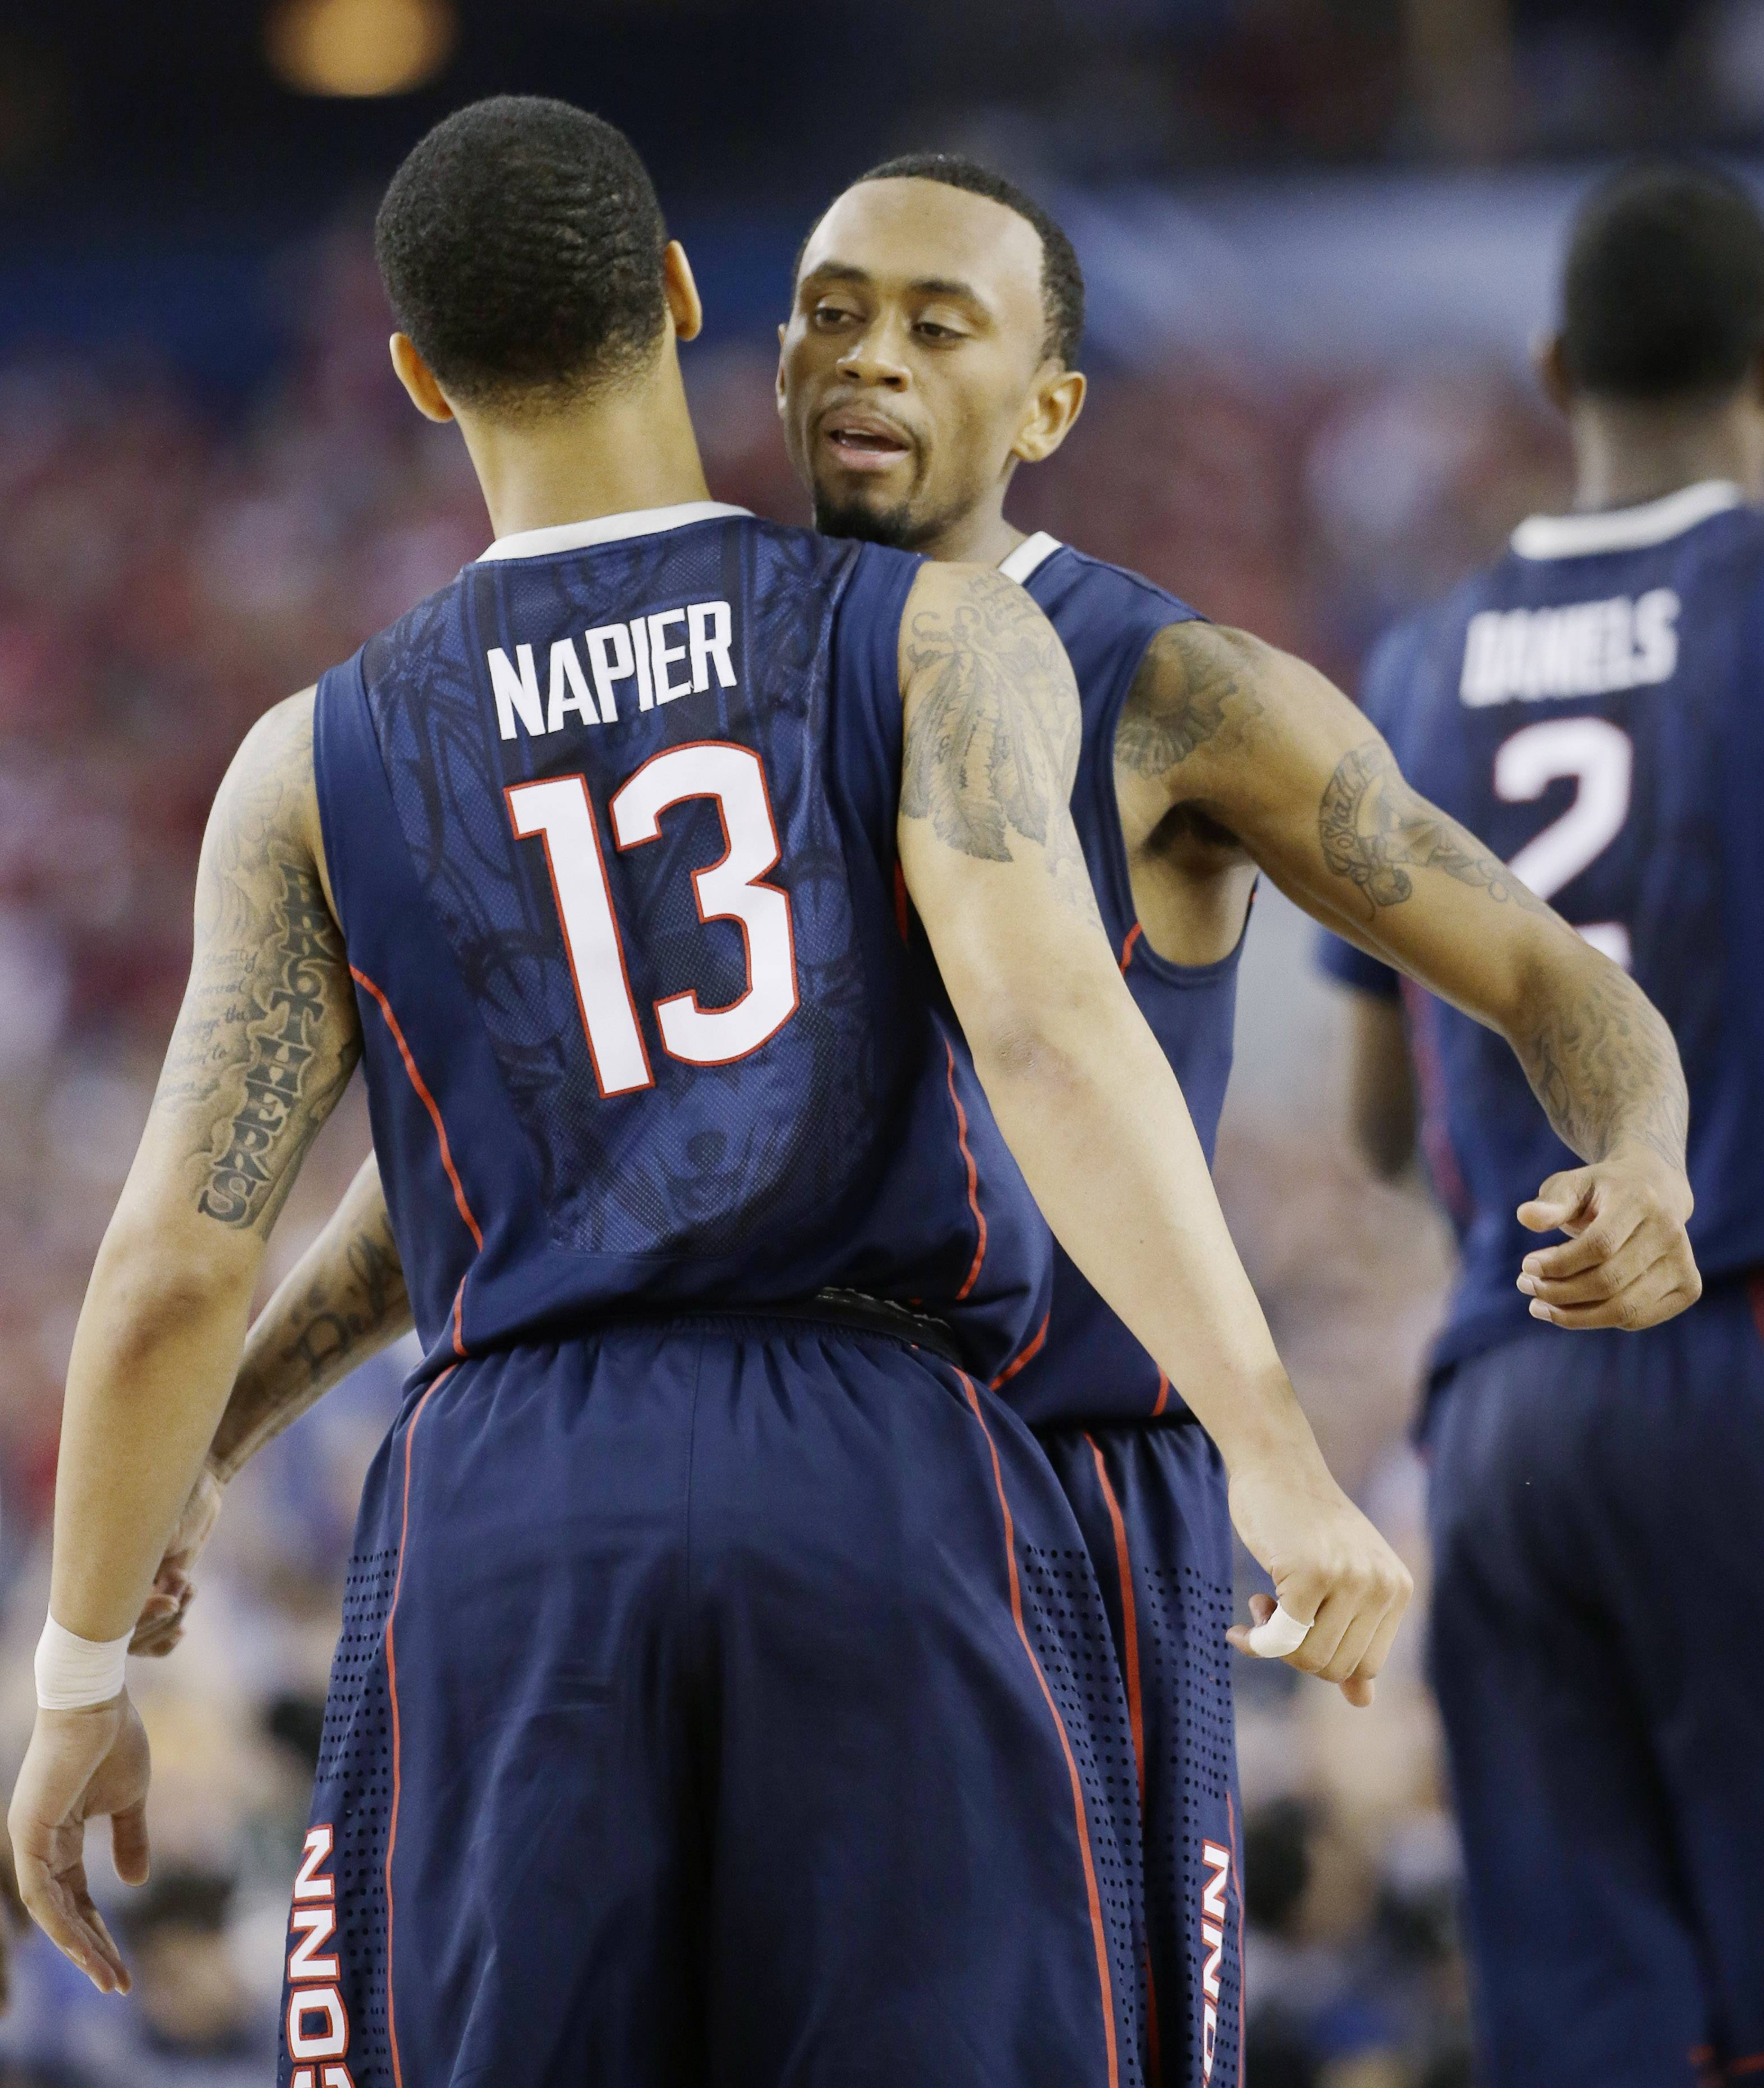 Connecticut guard Shabazz Napier (13) and guard Ryan Boatright celebrate during the NCAA Final Four tournament college basketball semifinal game Saturday in Arlington, Texas.